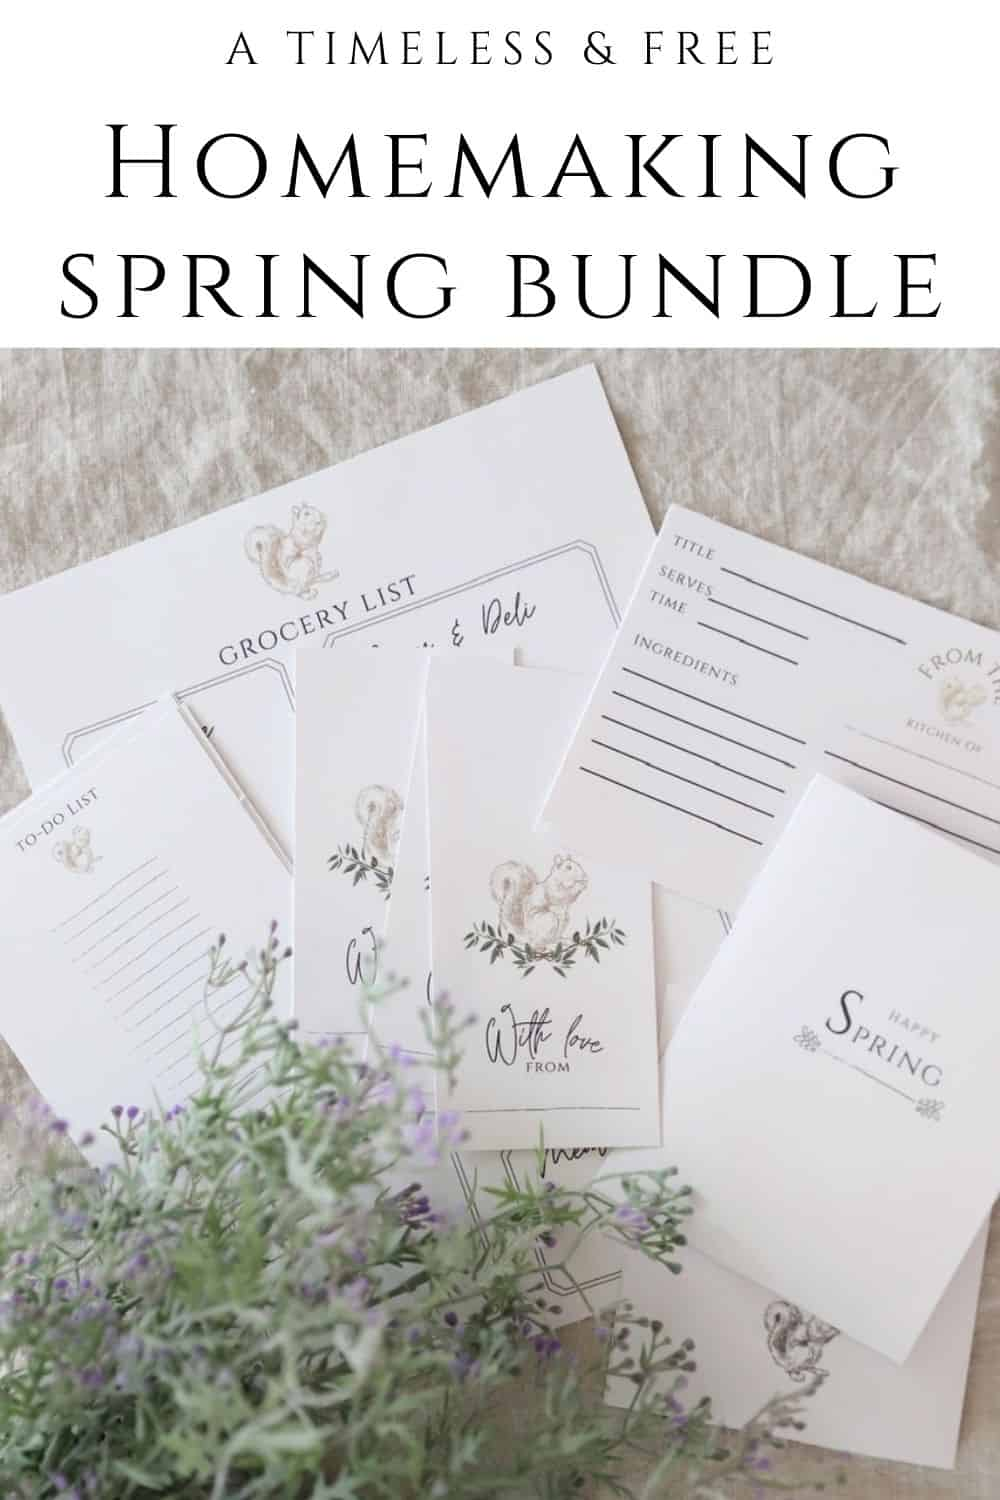 spring grocery list, recipe card, gift tag, and to-do list printable bundle